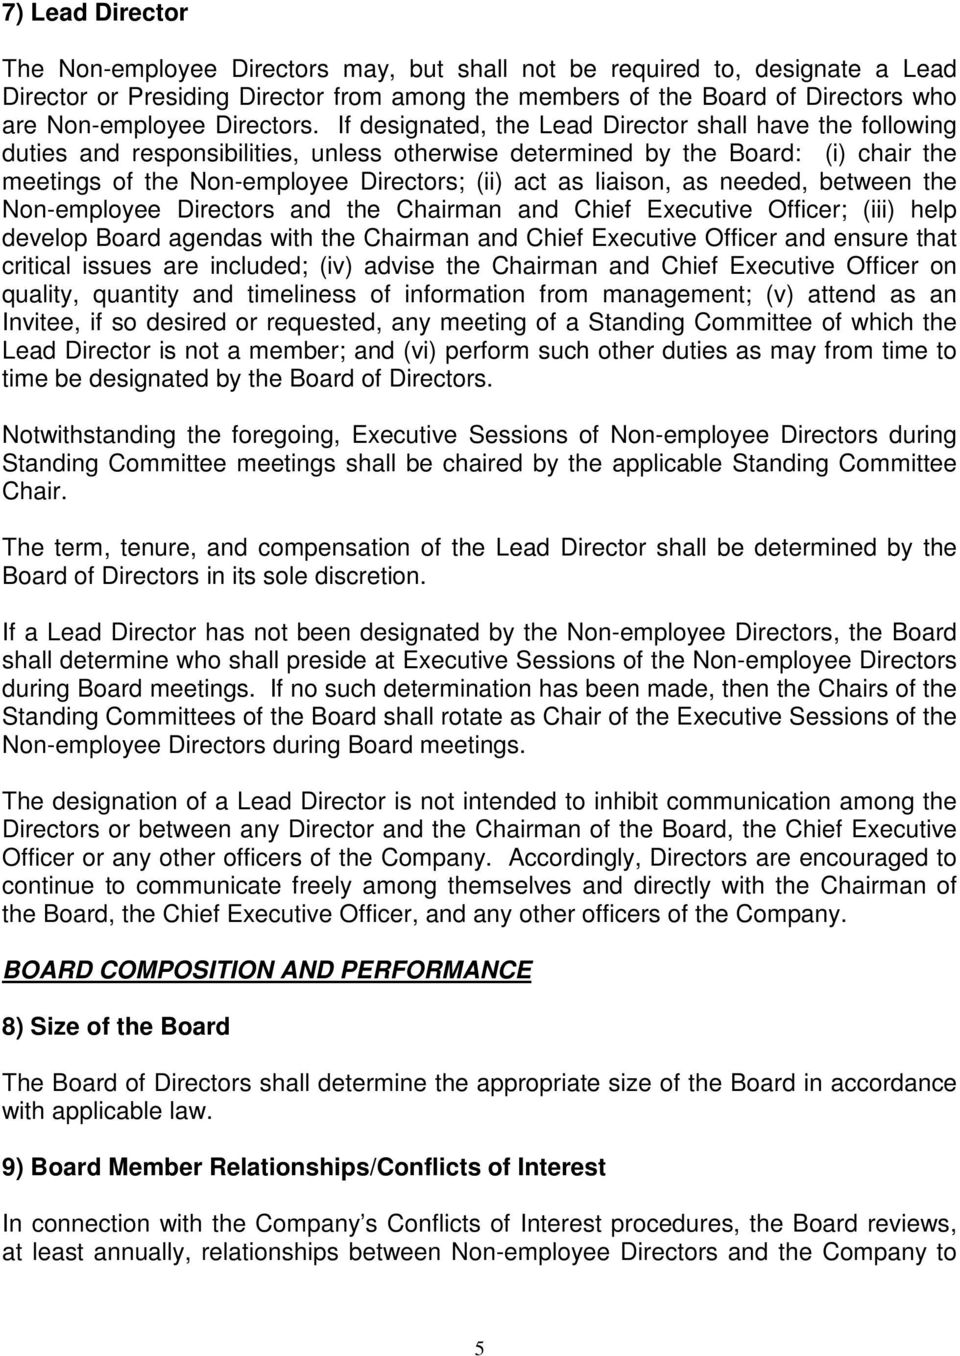 If designated, the Lead Director shall have the following duties and responsibilities, unless otherwise determined by the Board: (i) chair the meetings of the Non-employee Directors; (ii) act as